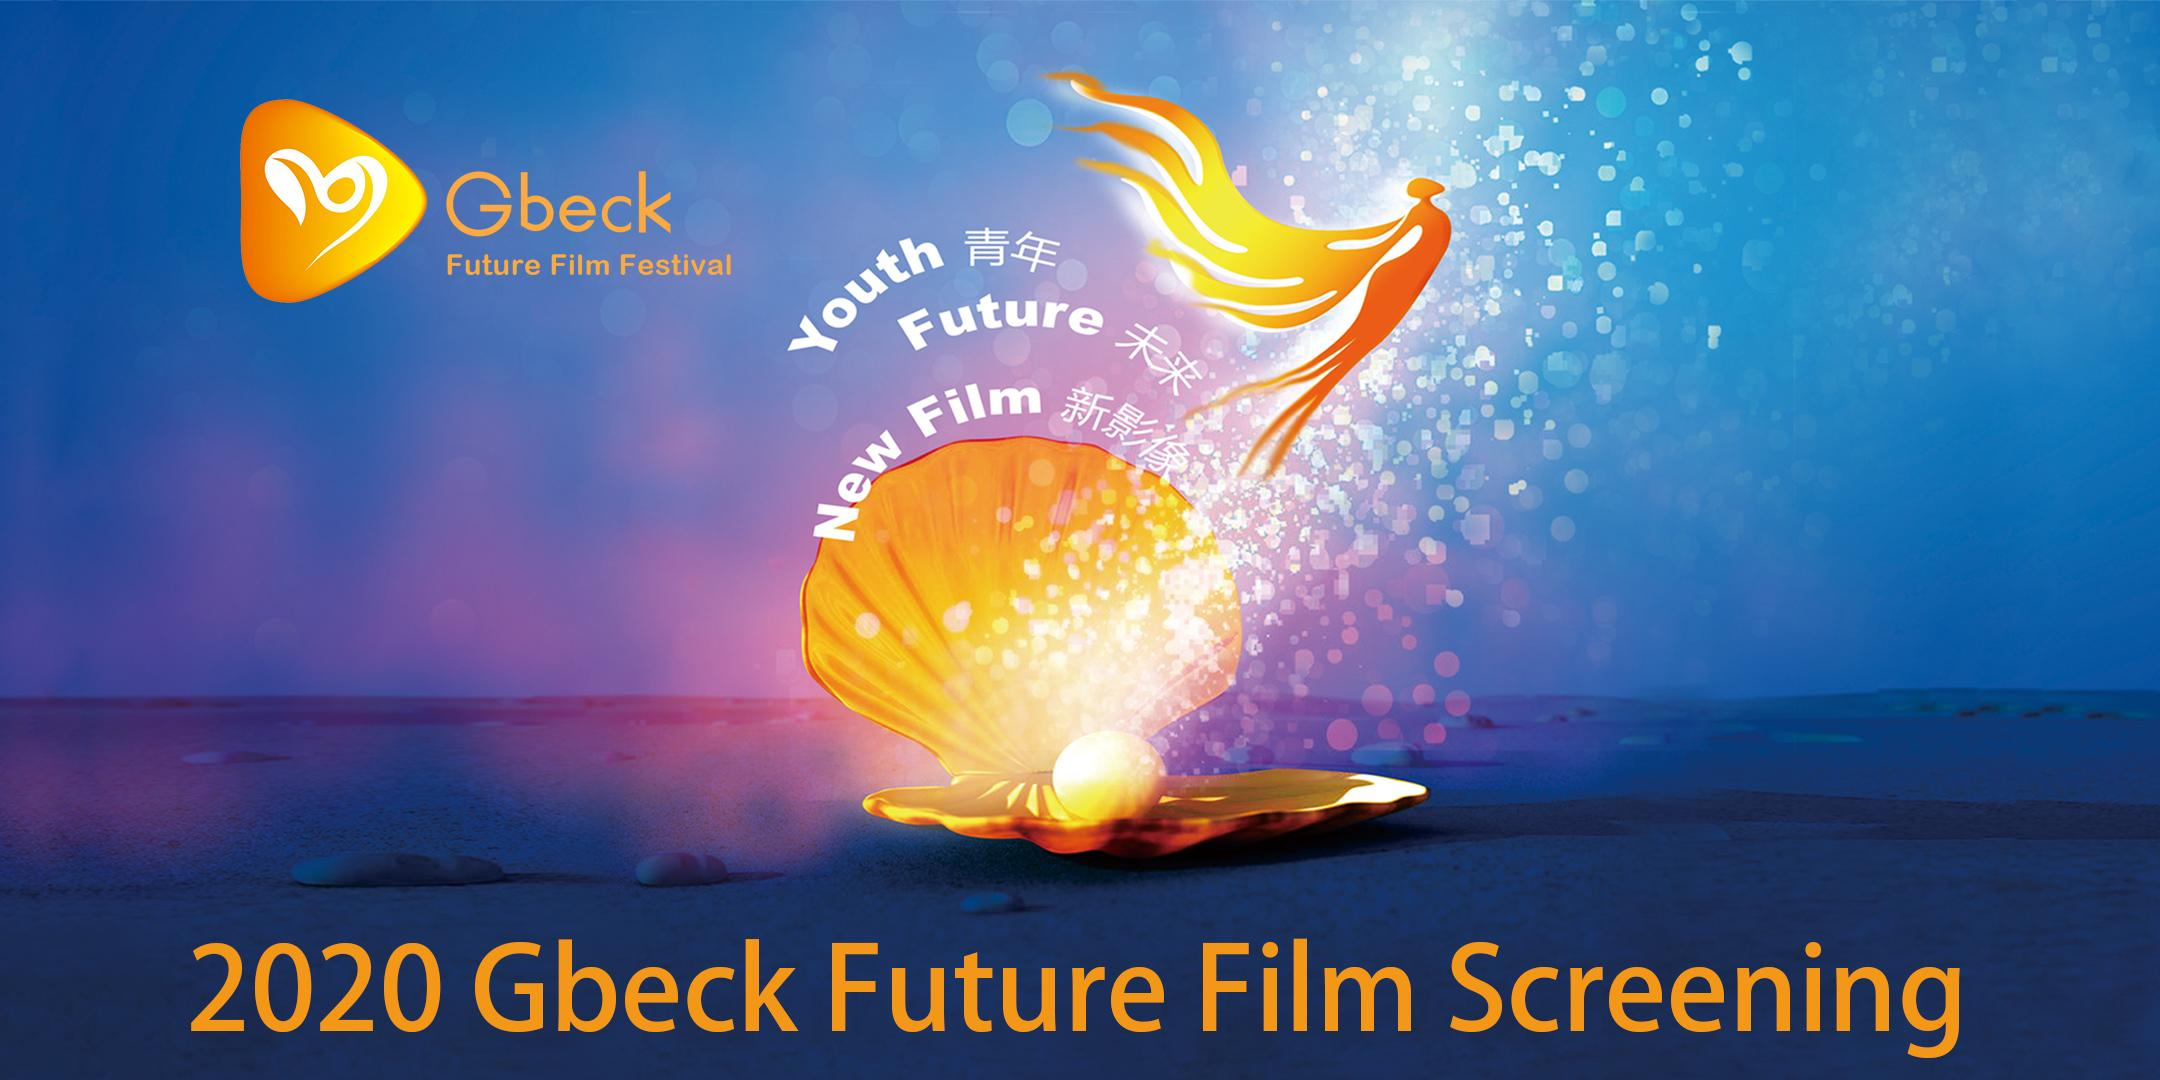 2020 Gbeck Future Film Screening